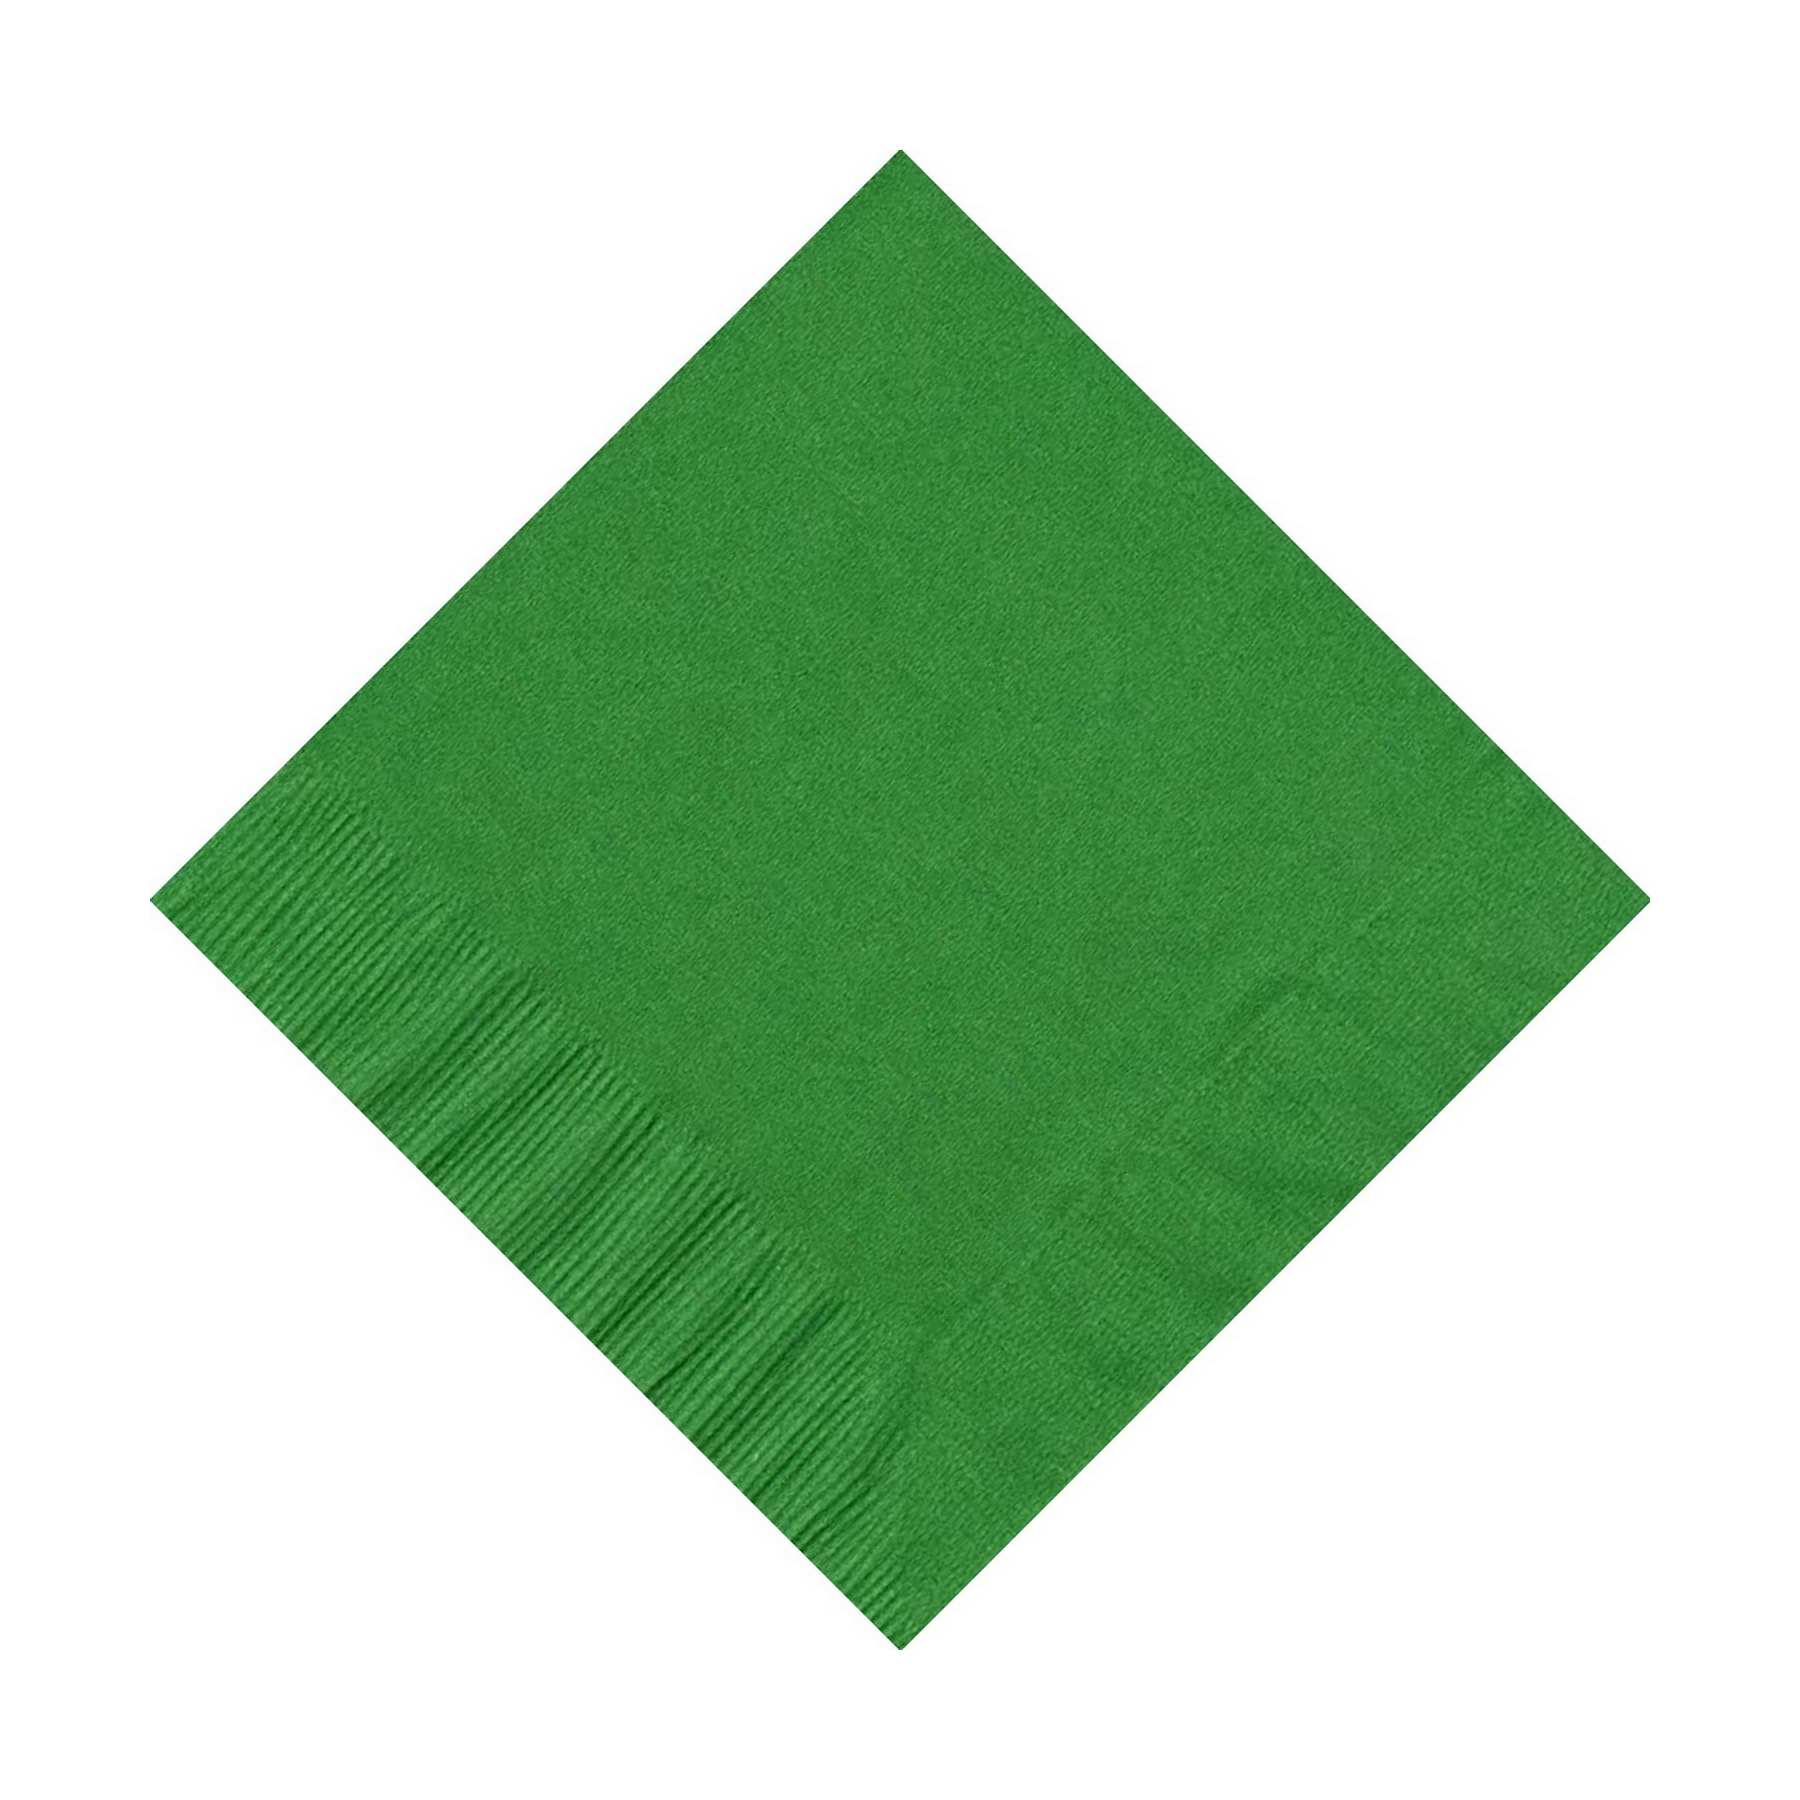 600 (12 Pks of 50) 2 Ply Plain Solid Colors Beverage Cocktail Napkins Paper Kelly Green by CREATIVE CONVERTING